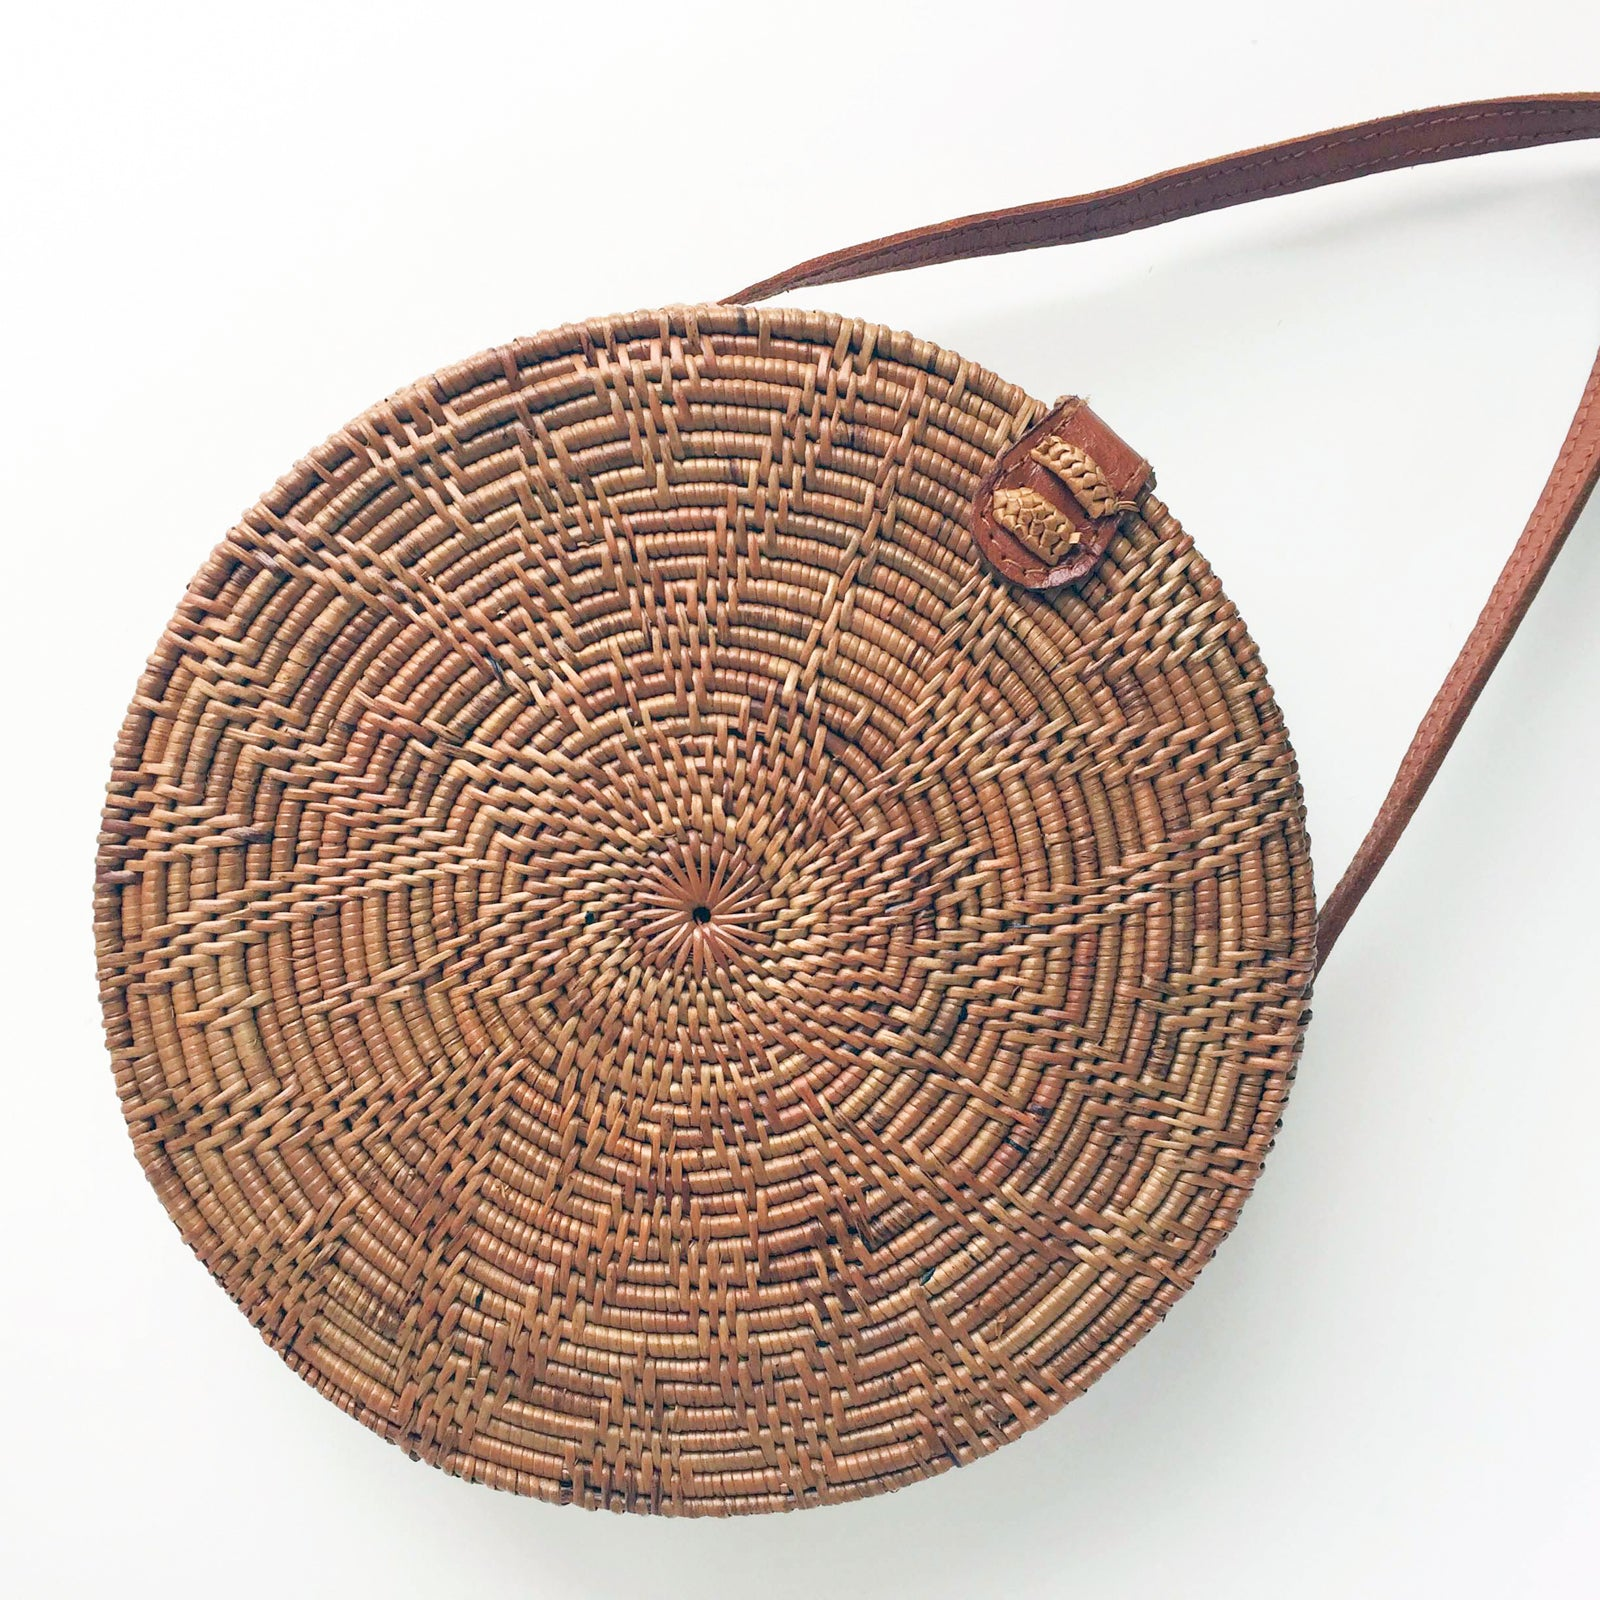 Bali bags rattan woven round bag bohemian natural star leather